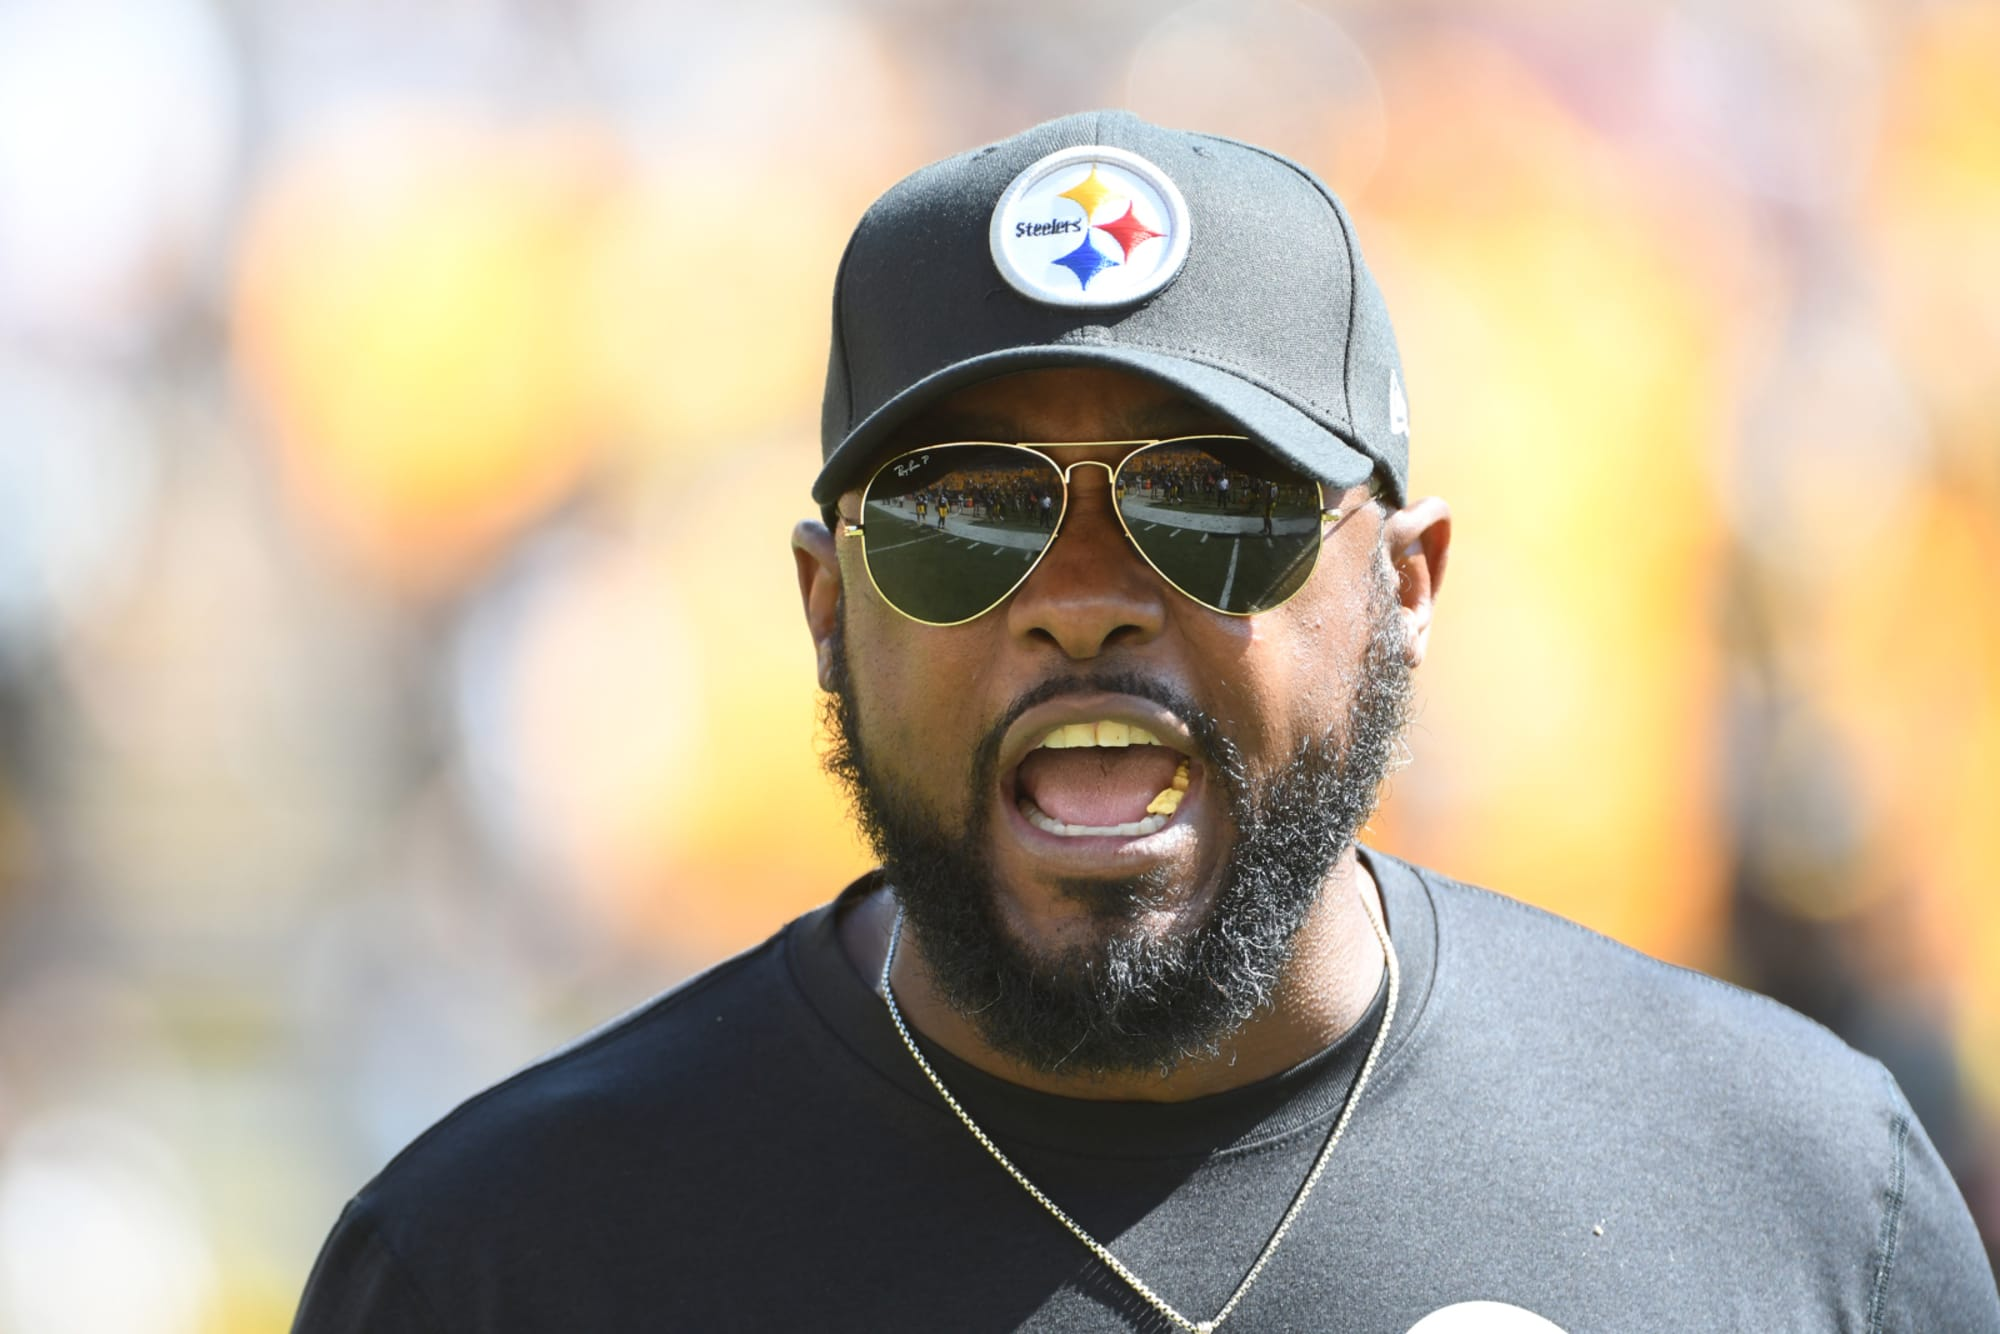 Steelers: Mike Tomlin unhappy that Trai Turner got ejected for spitting